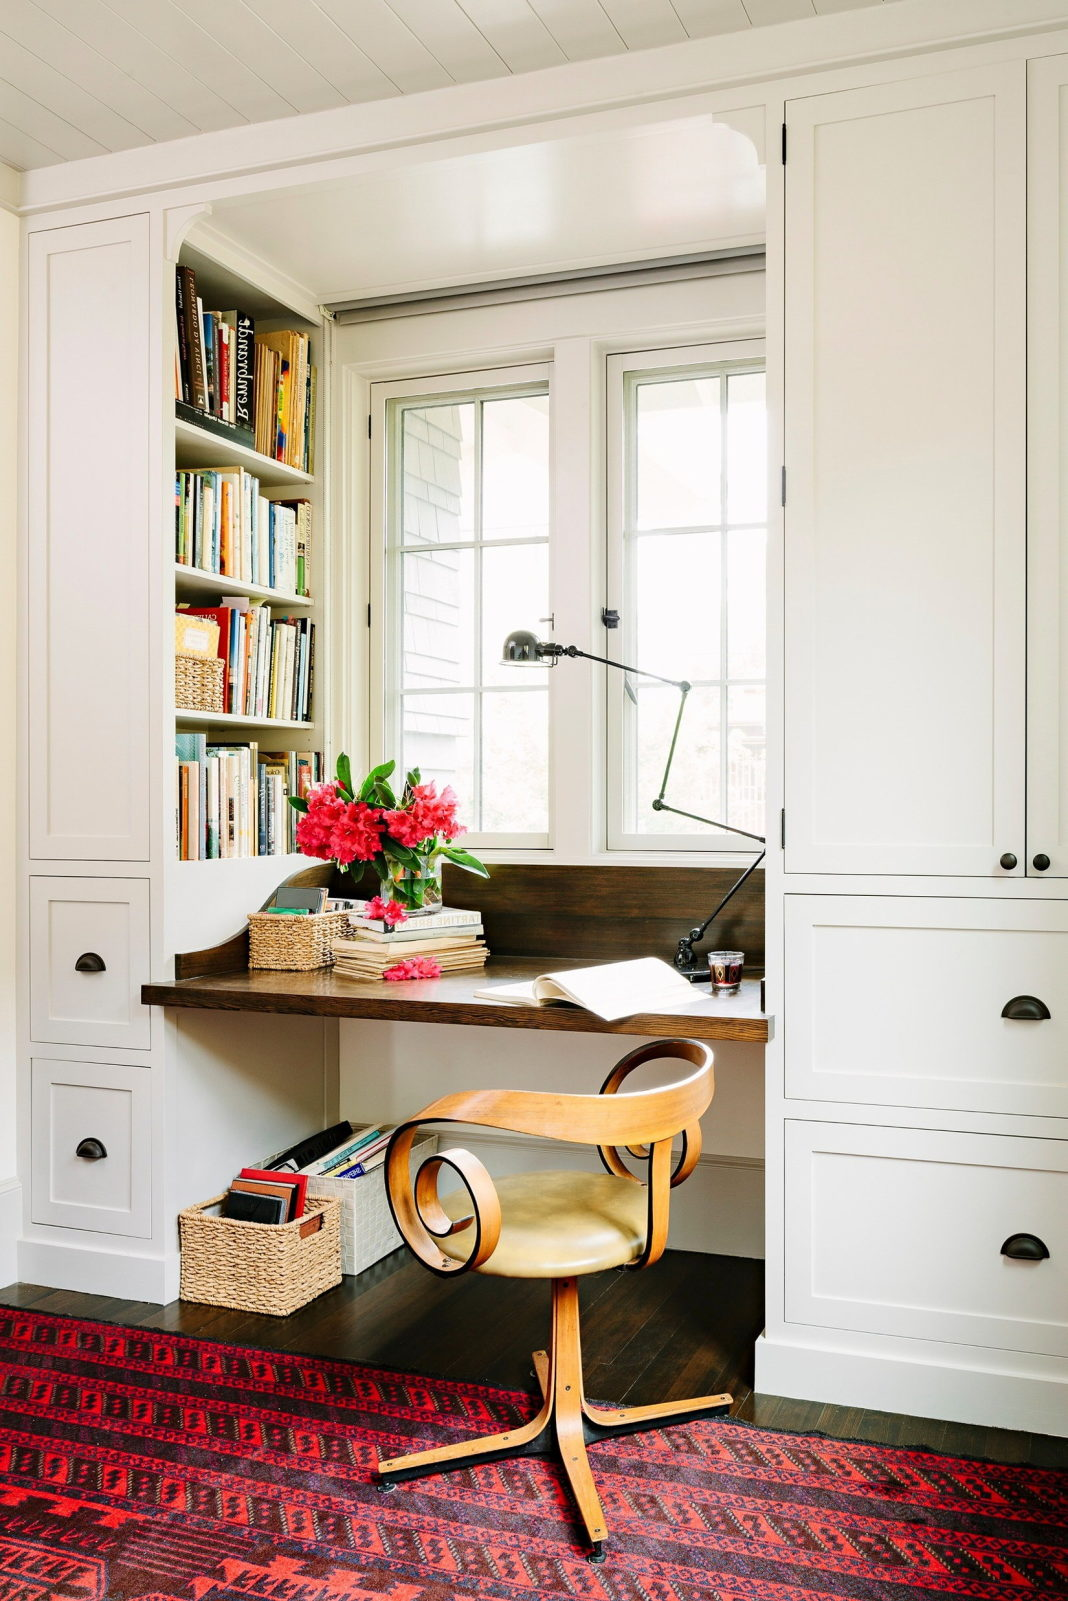 Library house from jessica helgerson interior design.